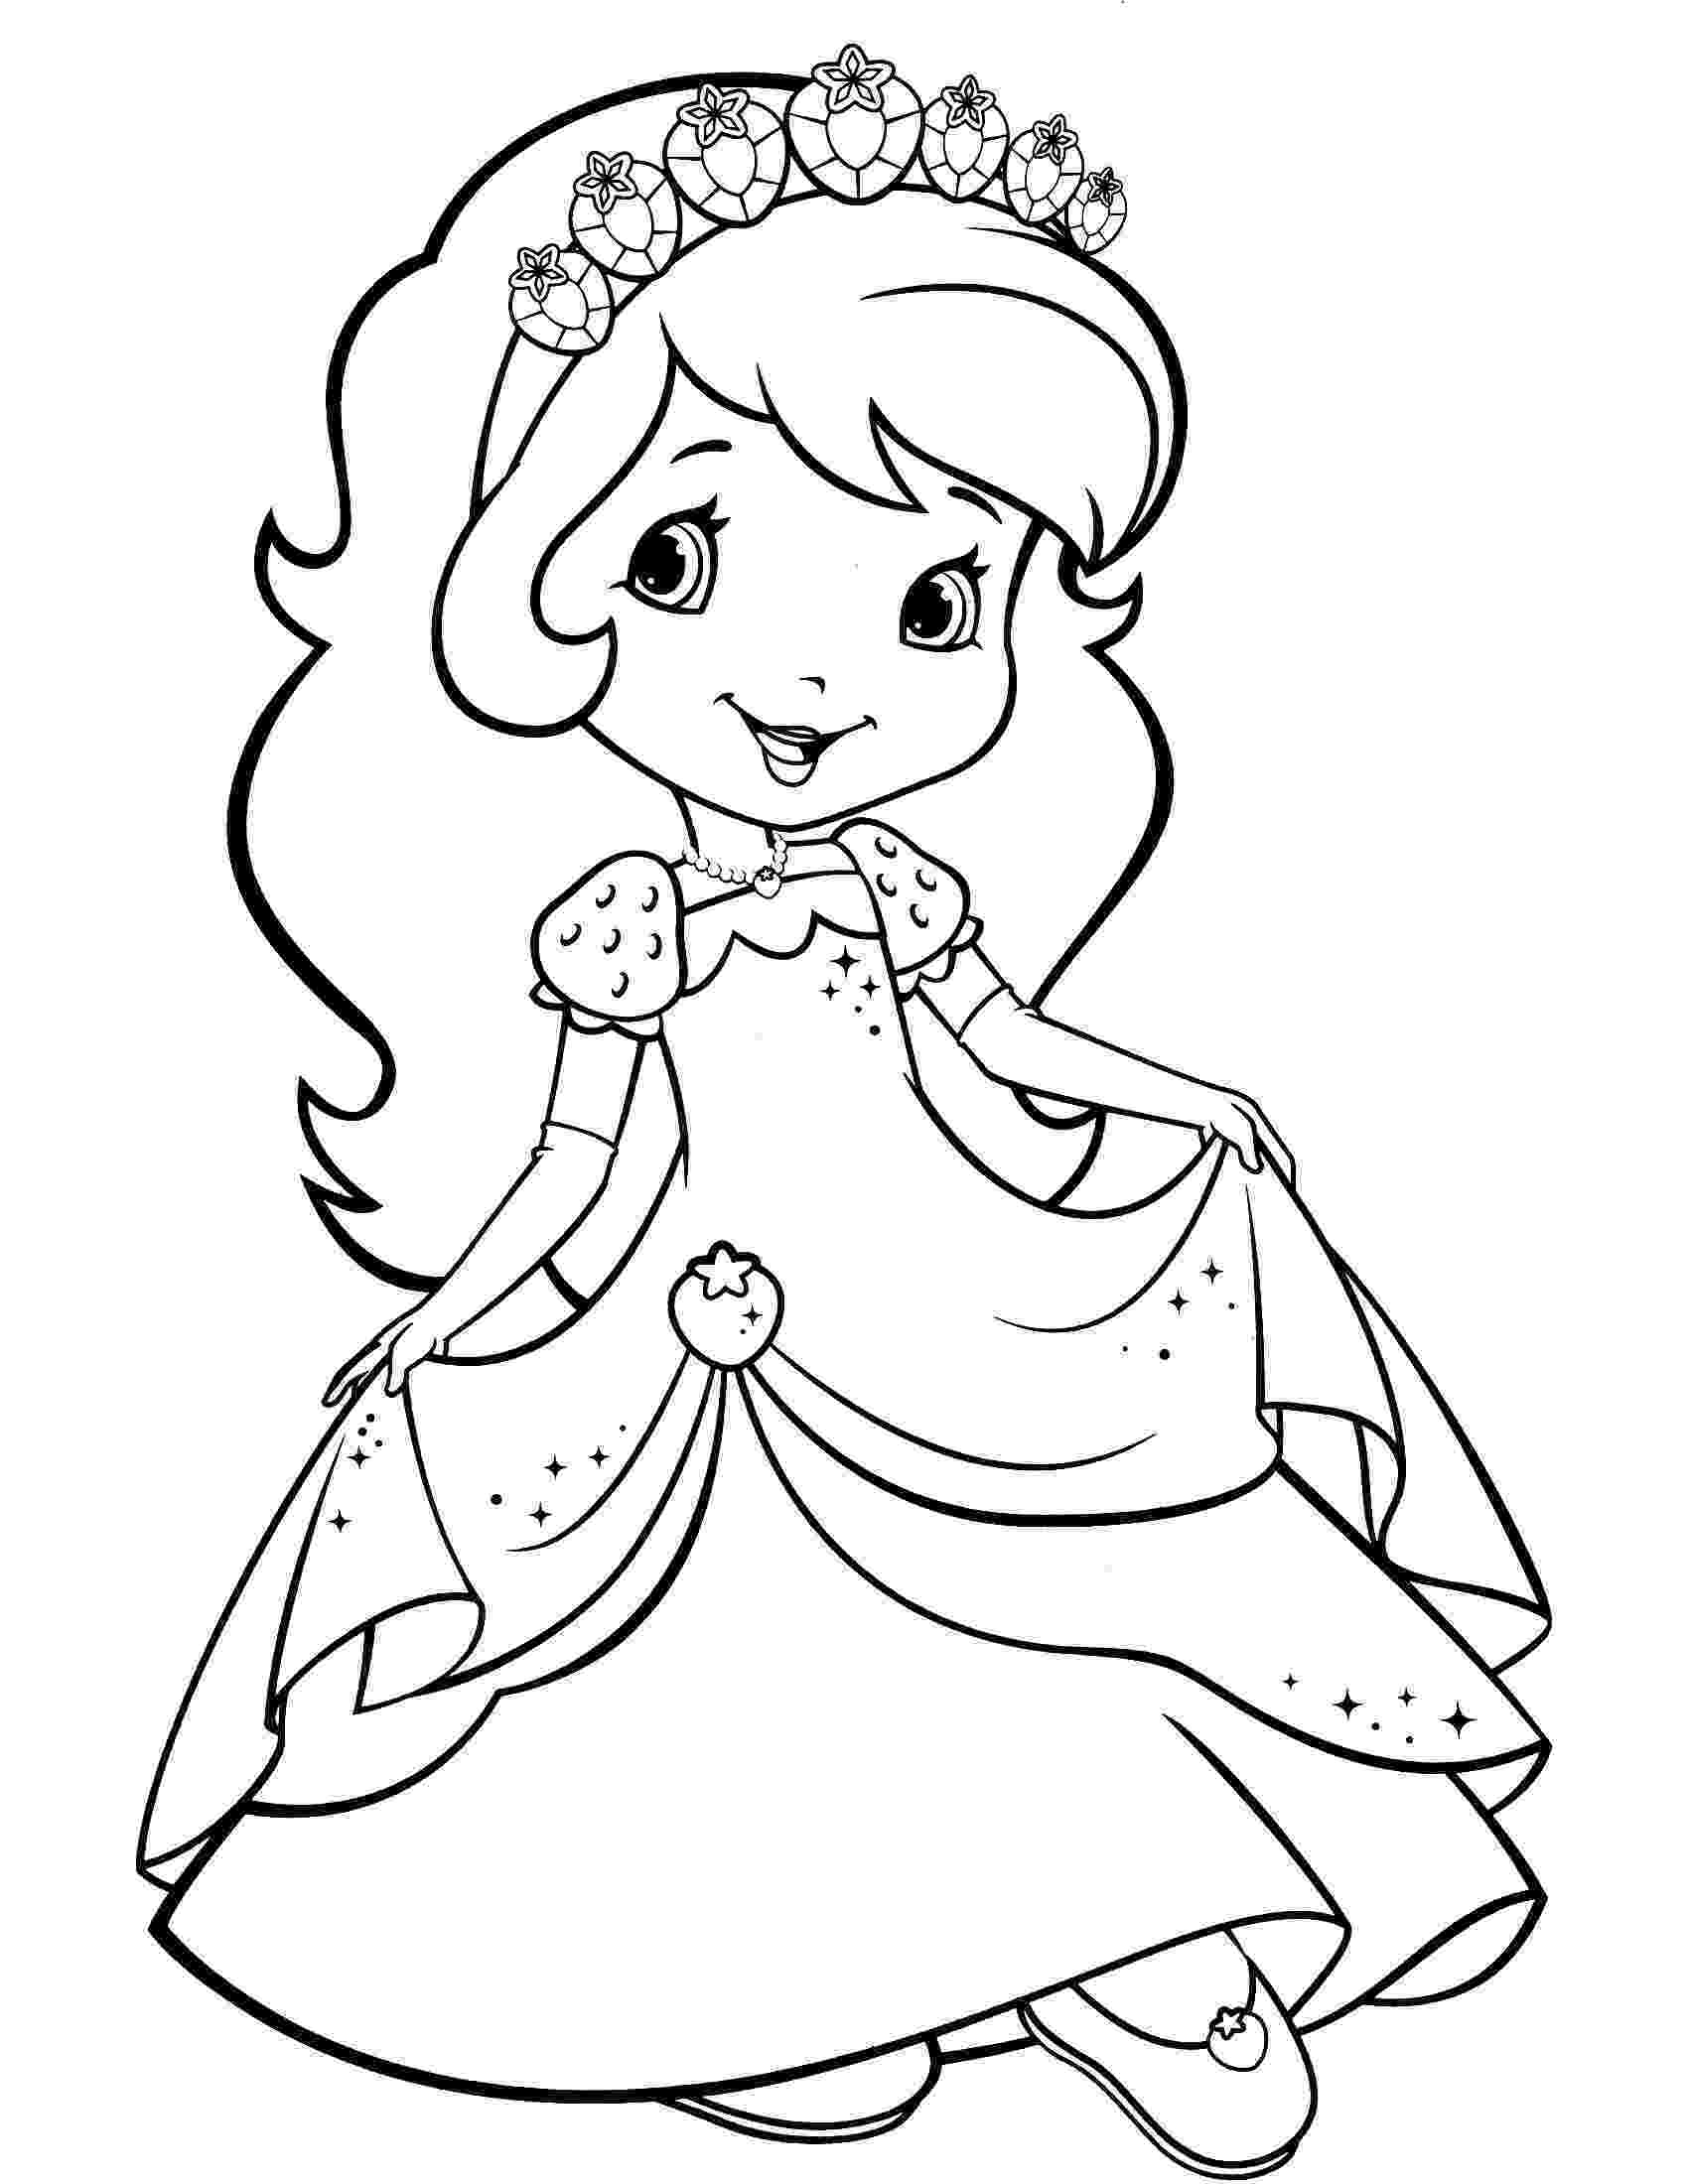 strawberry shortcake colouring pictures baby strawberry shortcake with baby pupcake and custard strawberry colouring pictures shortcake